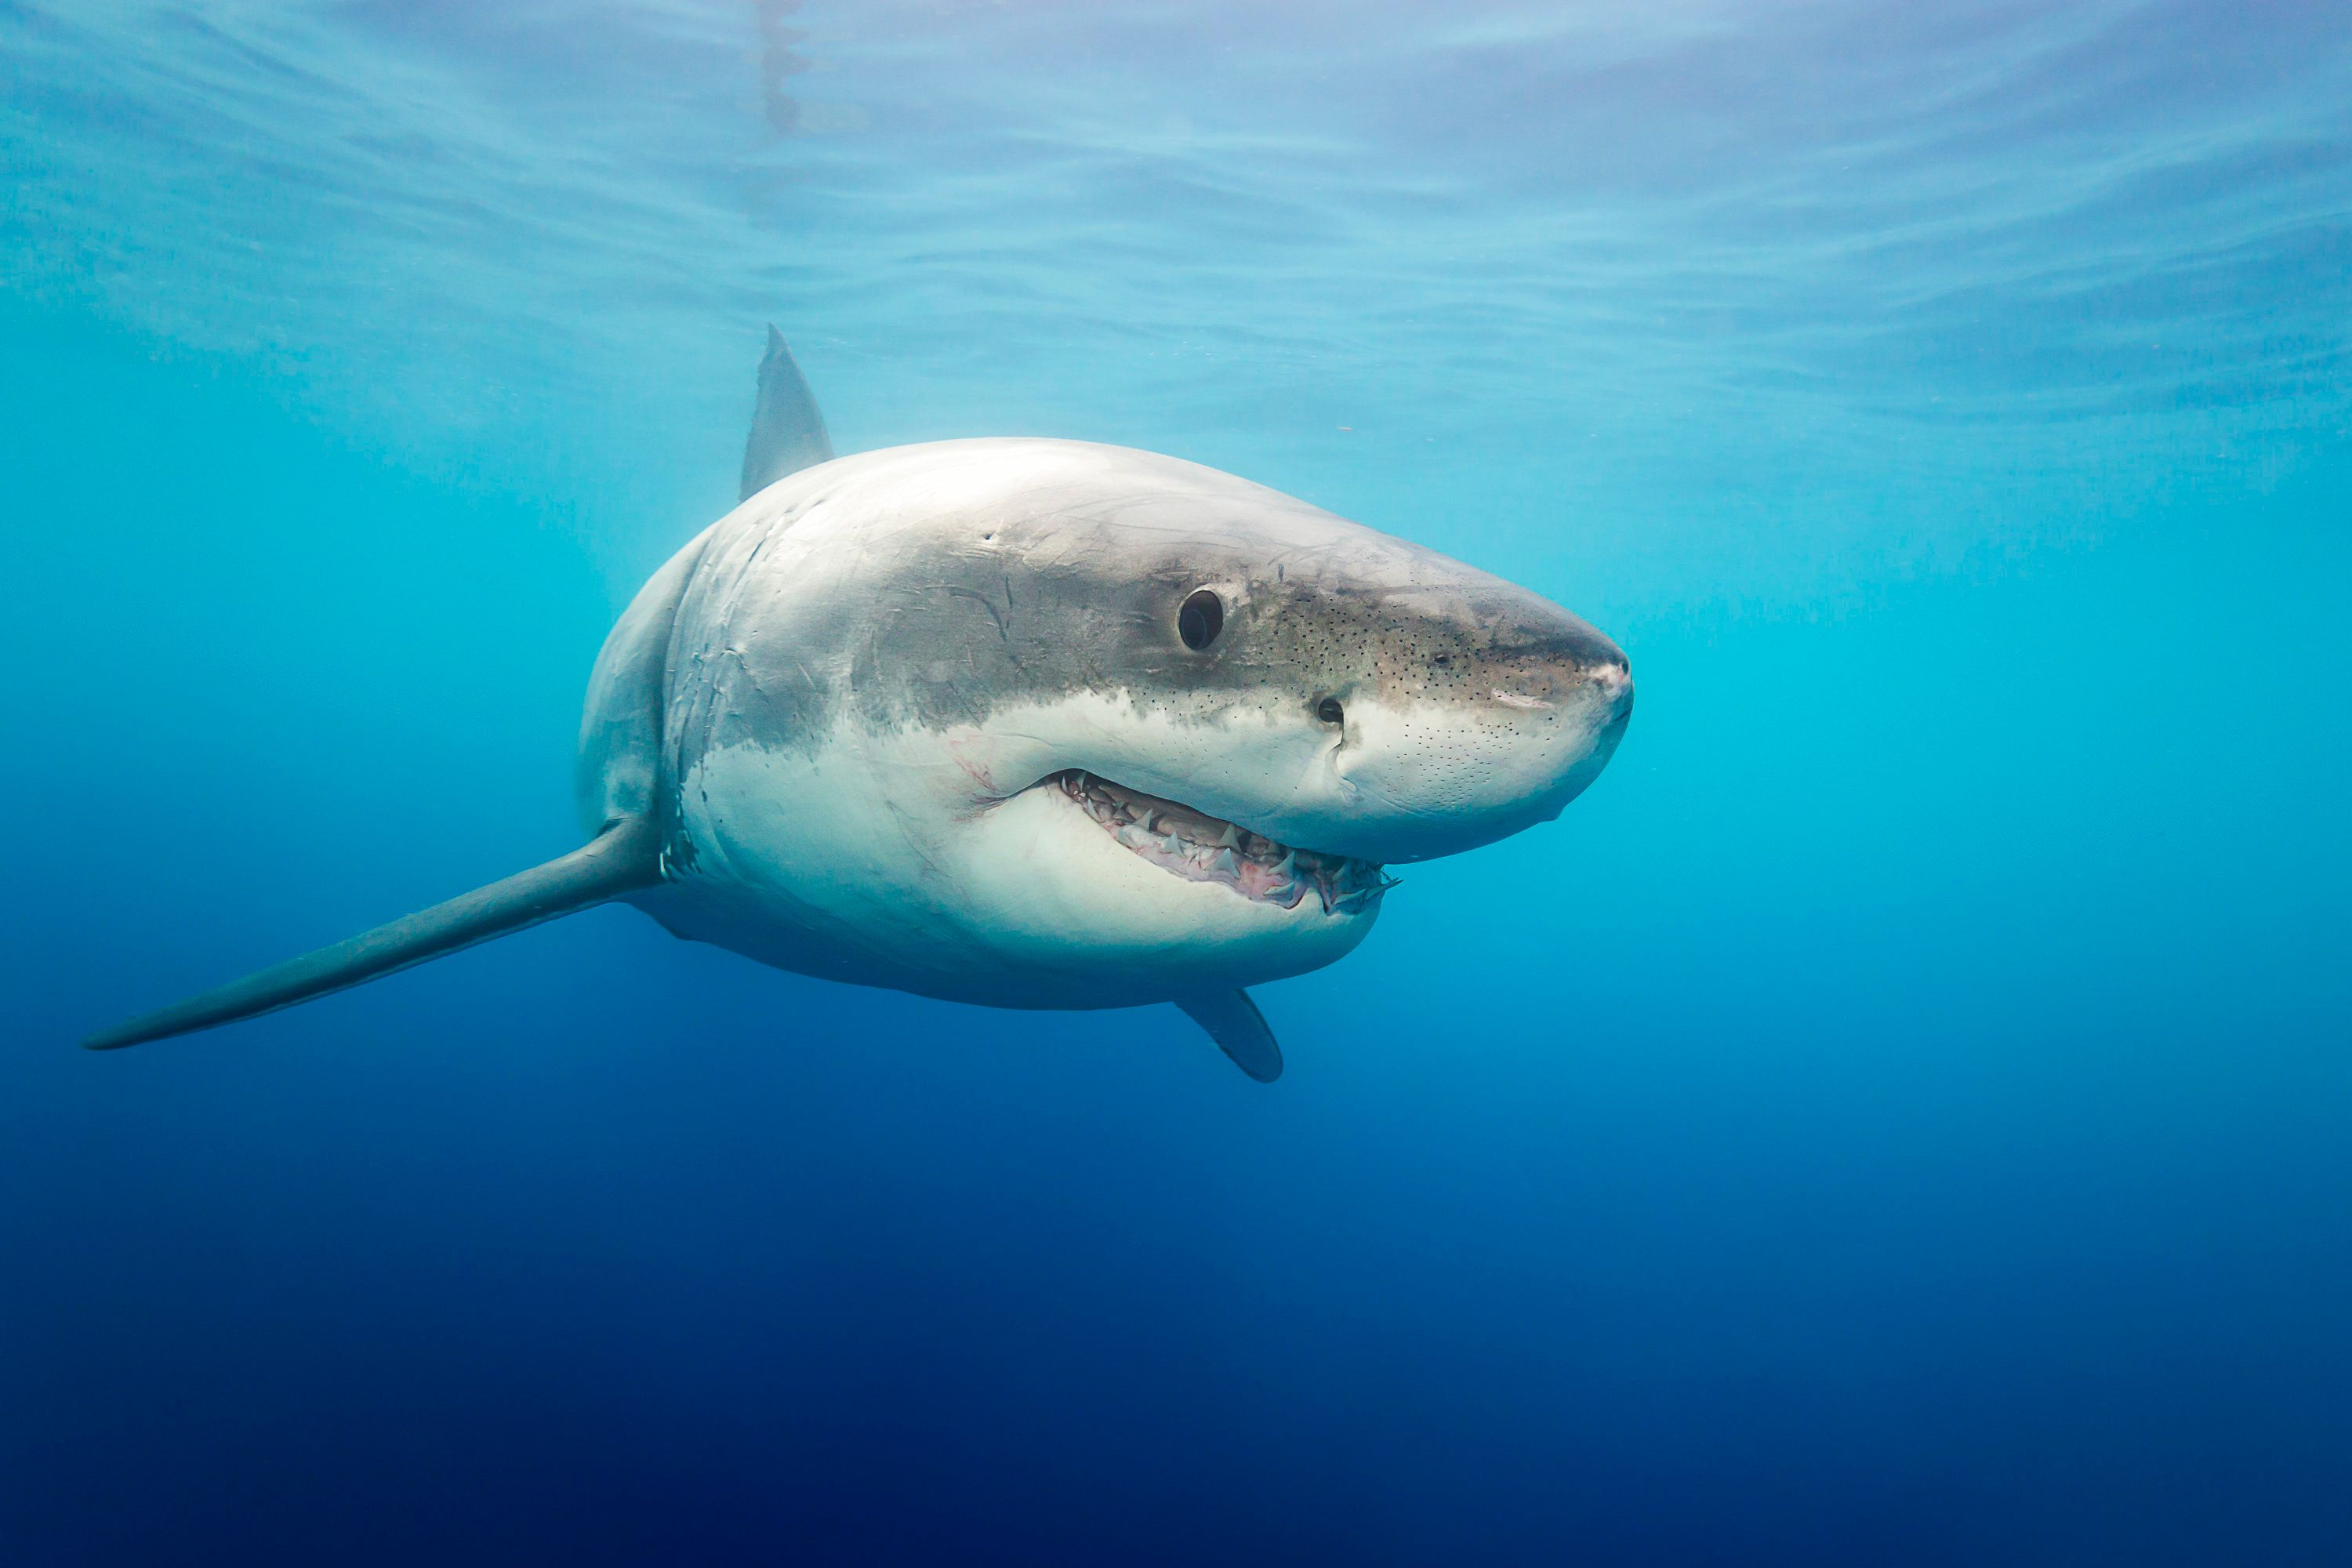 *** EXCLUSIVE ***  GUADALUPE ISLAND, MEXICO - SEPTEMBER 8: A great white shark photographed on September, 8, 2015 near Guadalupe Island, Mexico.  Great white sharks emerge from the water with their jaws open in the clear blue waters of the Pacific Ocean. The incredible animals were photographed off the the coast of Guadalupe Island- a small volcanic island roughly 150 miles off the coast of Mexico's Baja California peninsula. There is thought to be roughly 170 great white's near the island- making it one of the best places in the world for divers to spot them.  PHOTOGRAPH BY David Fleetham / Barcroft India  UK Office, London. T +44 845 370 2233 W www.barcroftmedia.com  USA Office, New York City. T +1 212 796 2458 W www.barcroftusa.com  Indian Office, Delhi. T +91 11 4053 2429 W www.barcroftindia.com (Photo credit should read David Fleetham / Barcroft India / Barcroft Media via Getty Images)